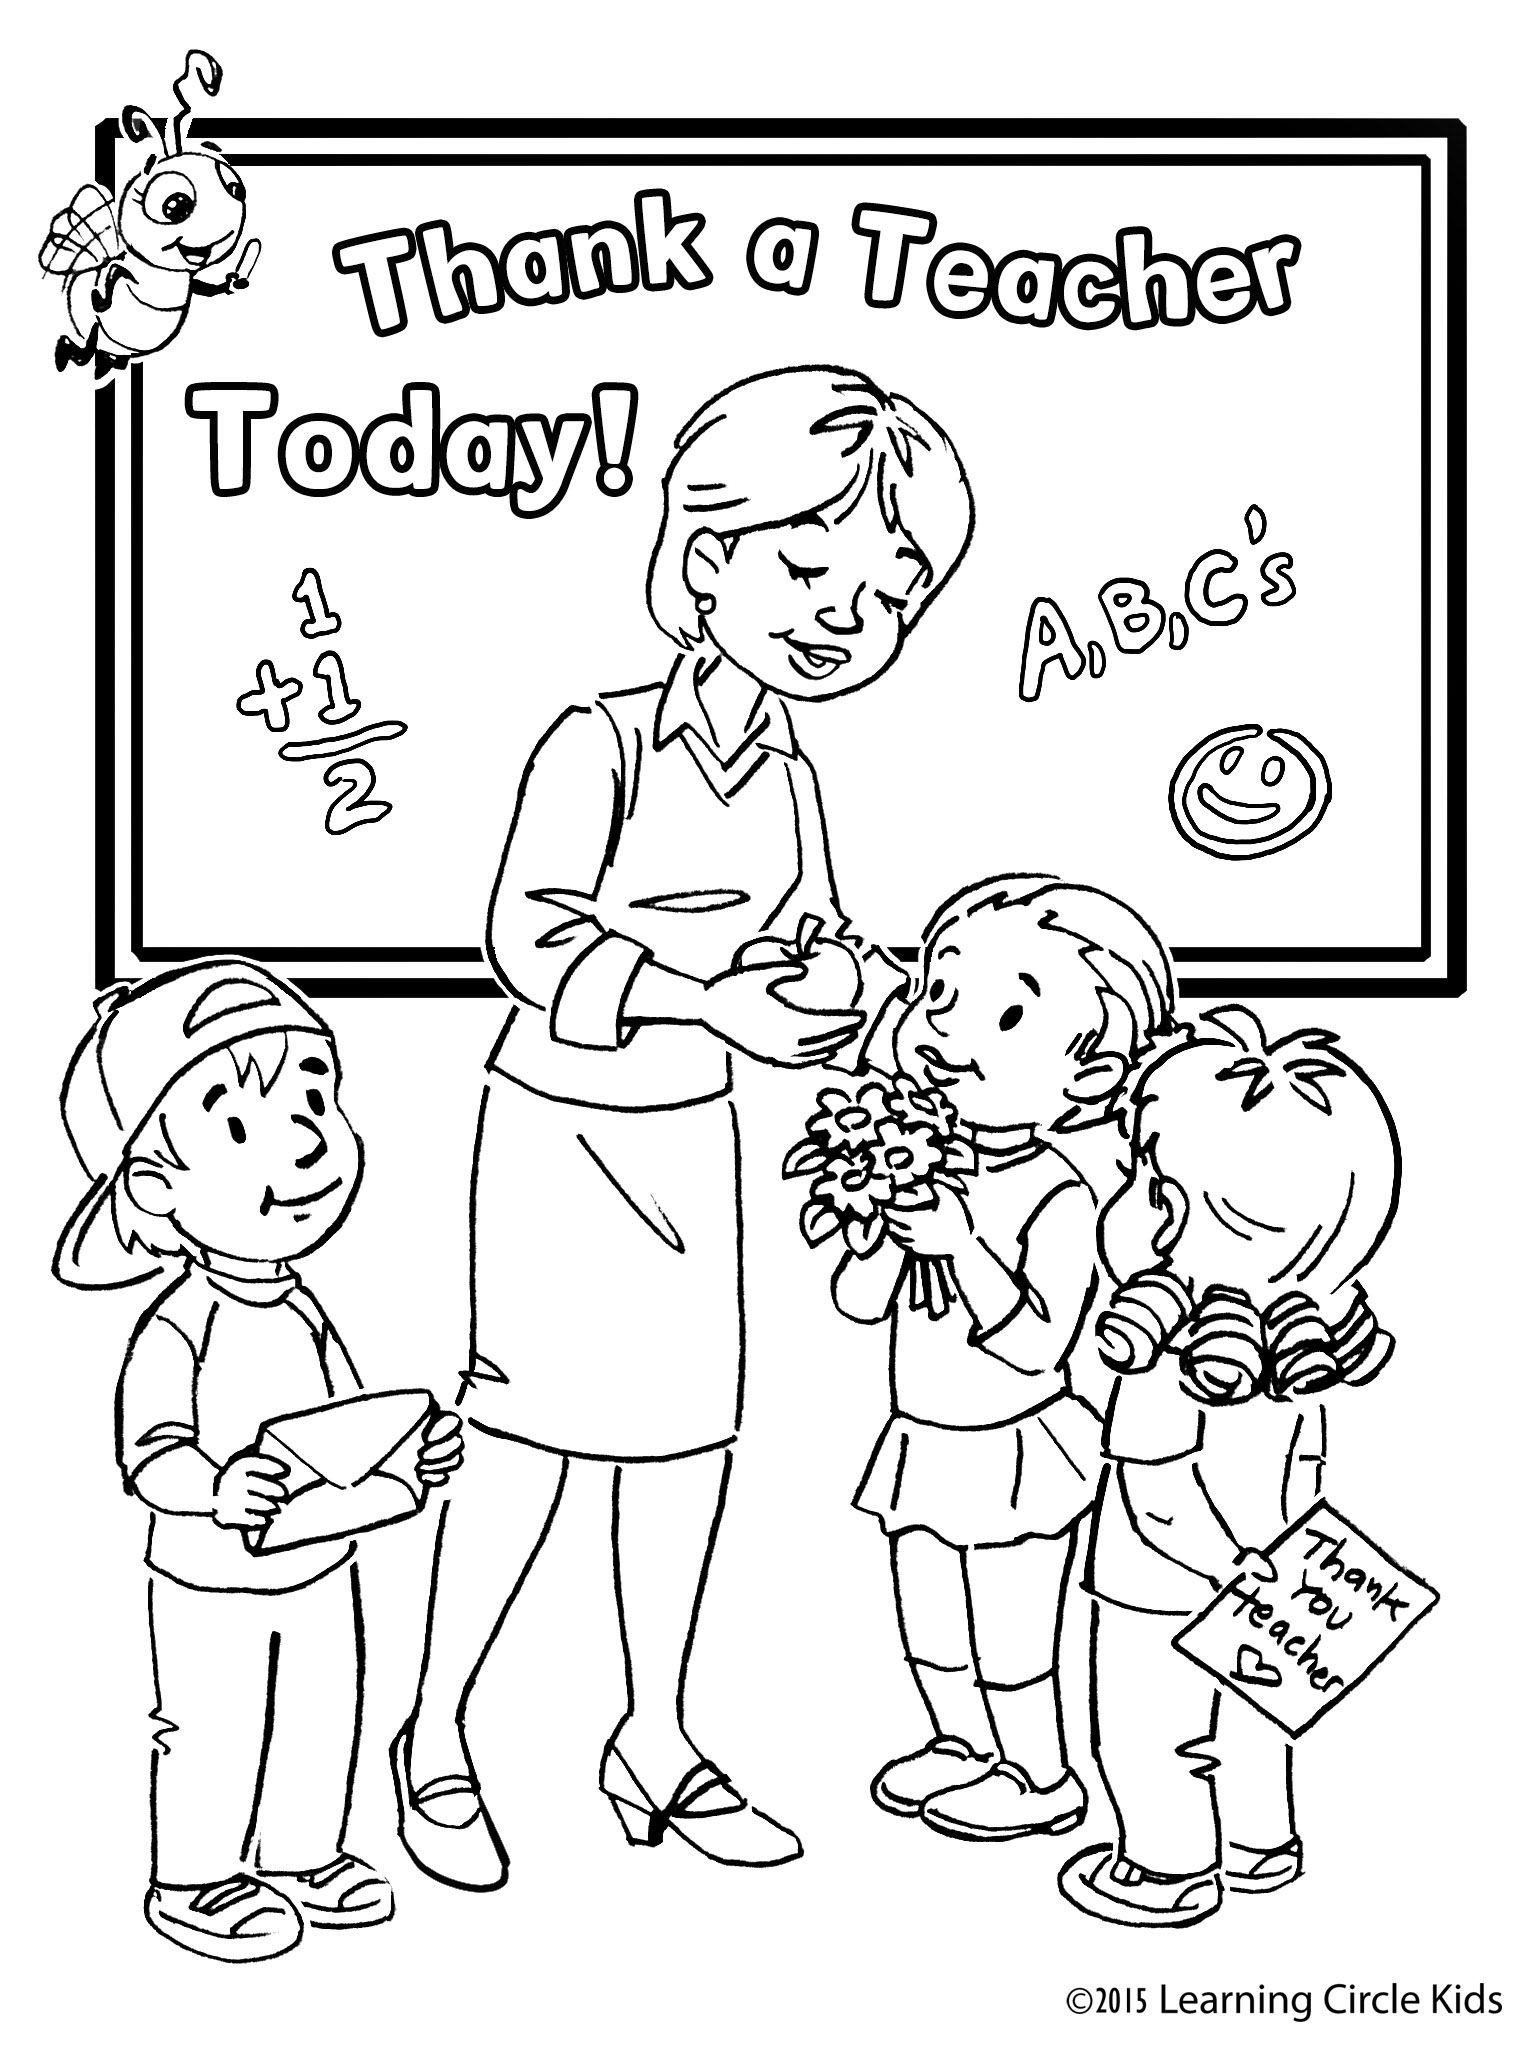 coloring pages for teachers appreciation teacher appreciation coloring pages to download and print pages teachers for coloring appreciation